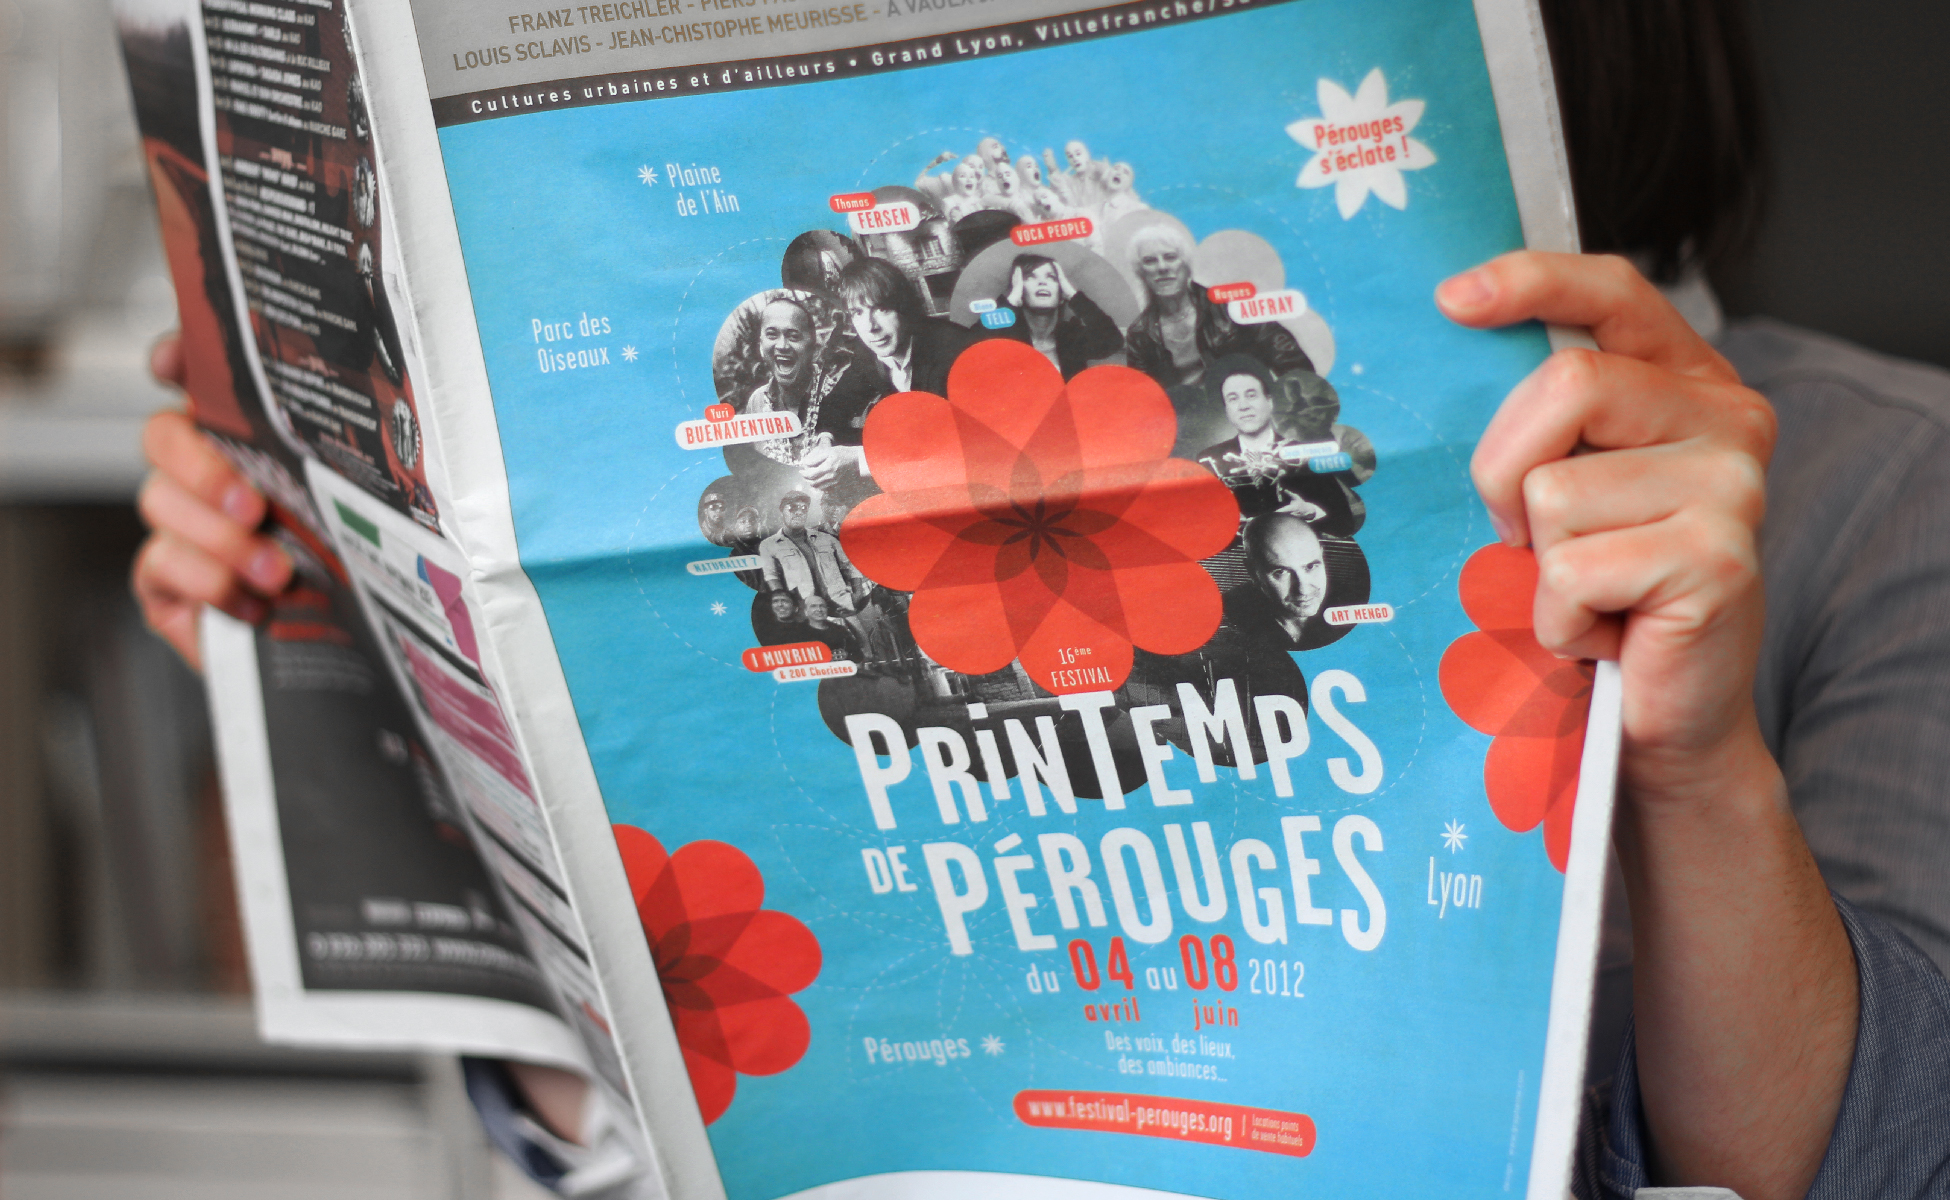 Graphisme du journal du festival du printemps de Pérouges Lyon